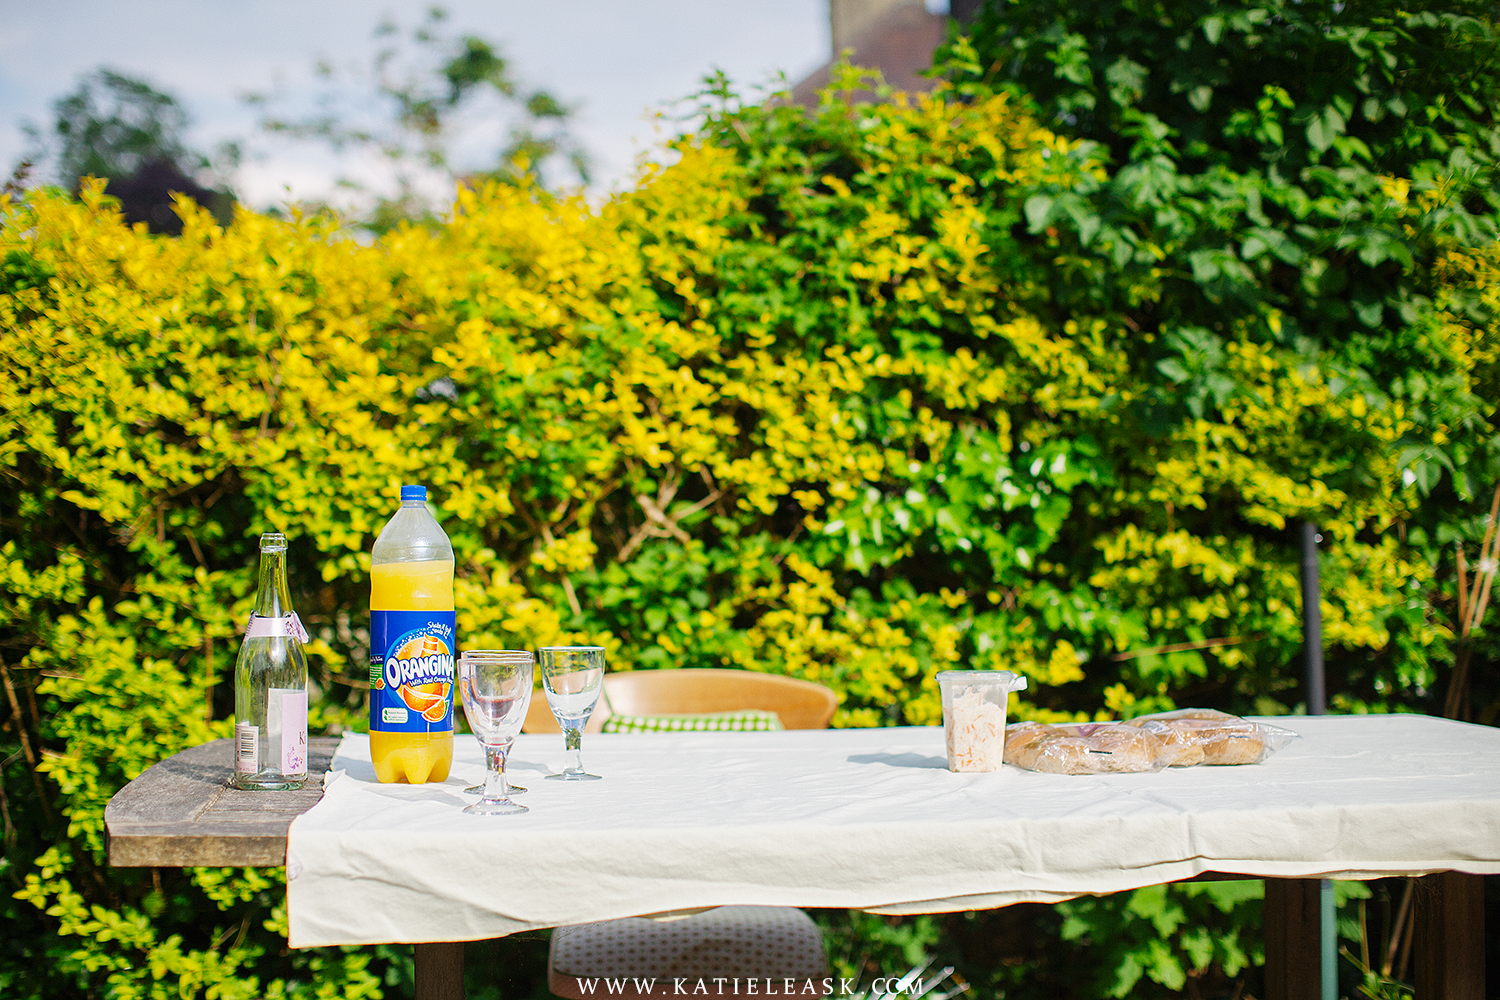 Katie-Leask-Photography-BBQ-004-S